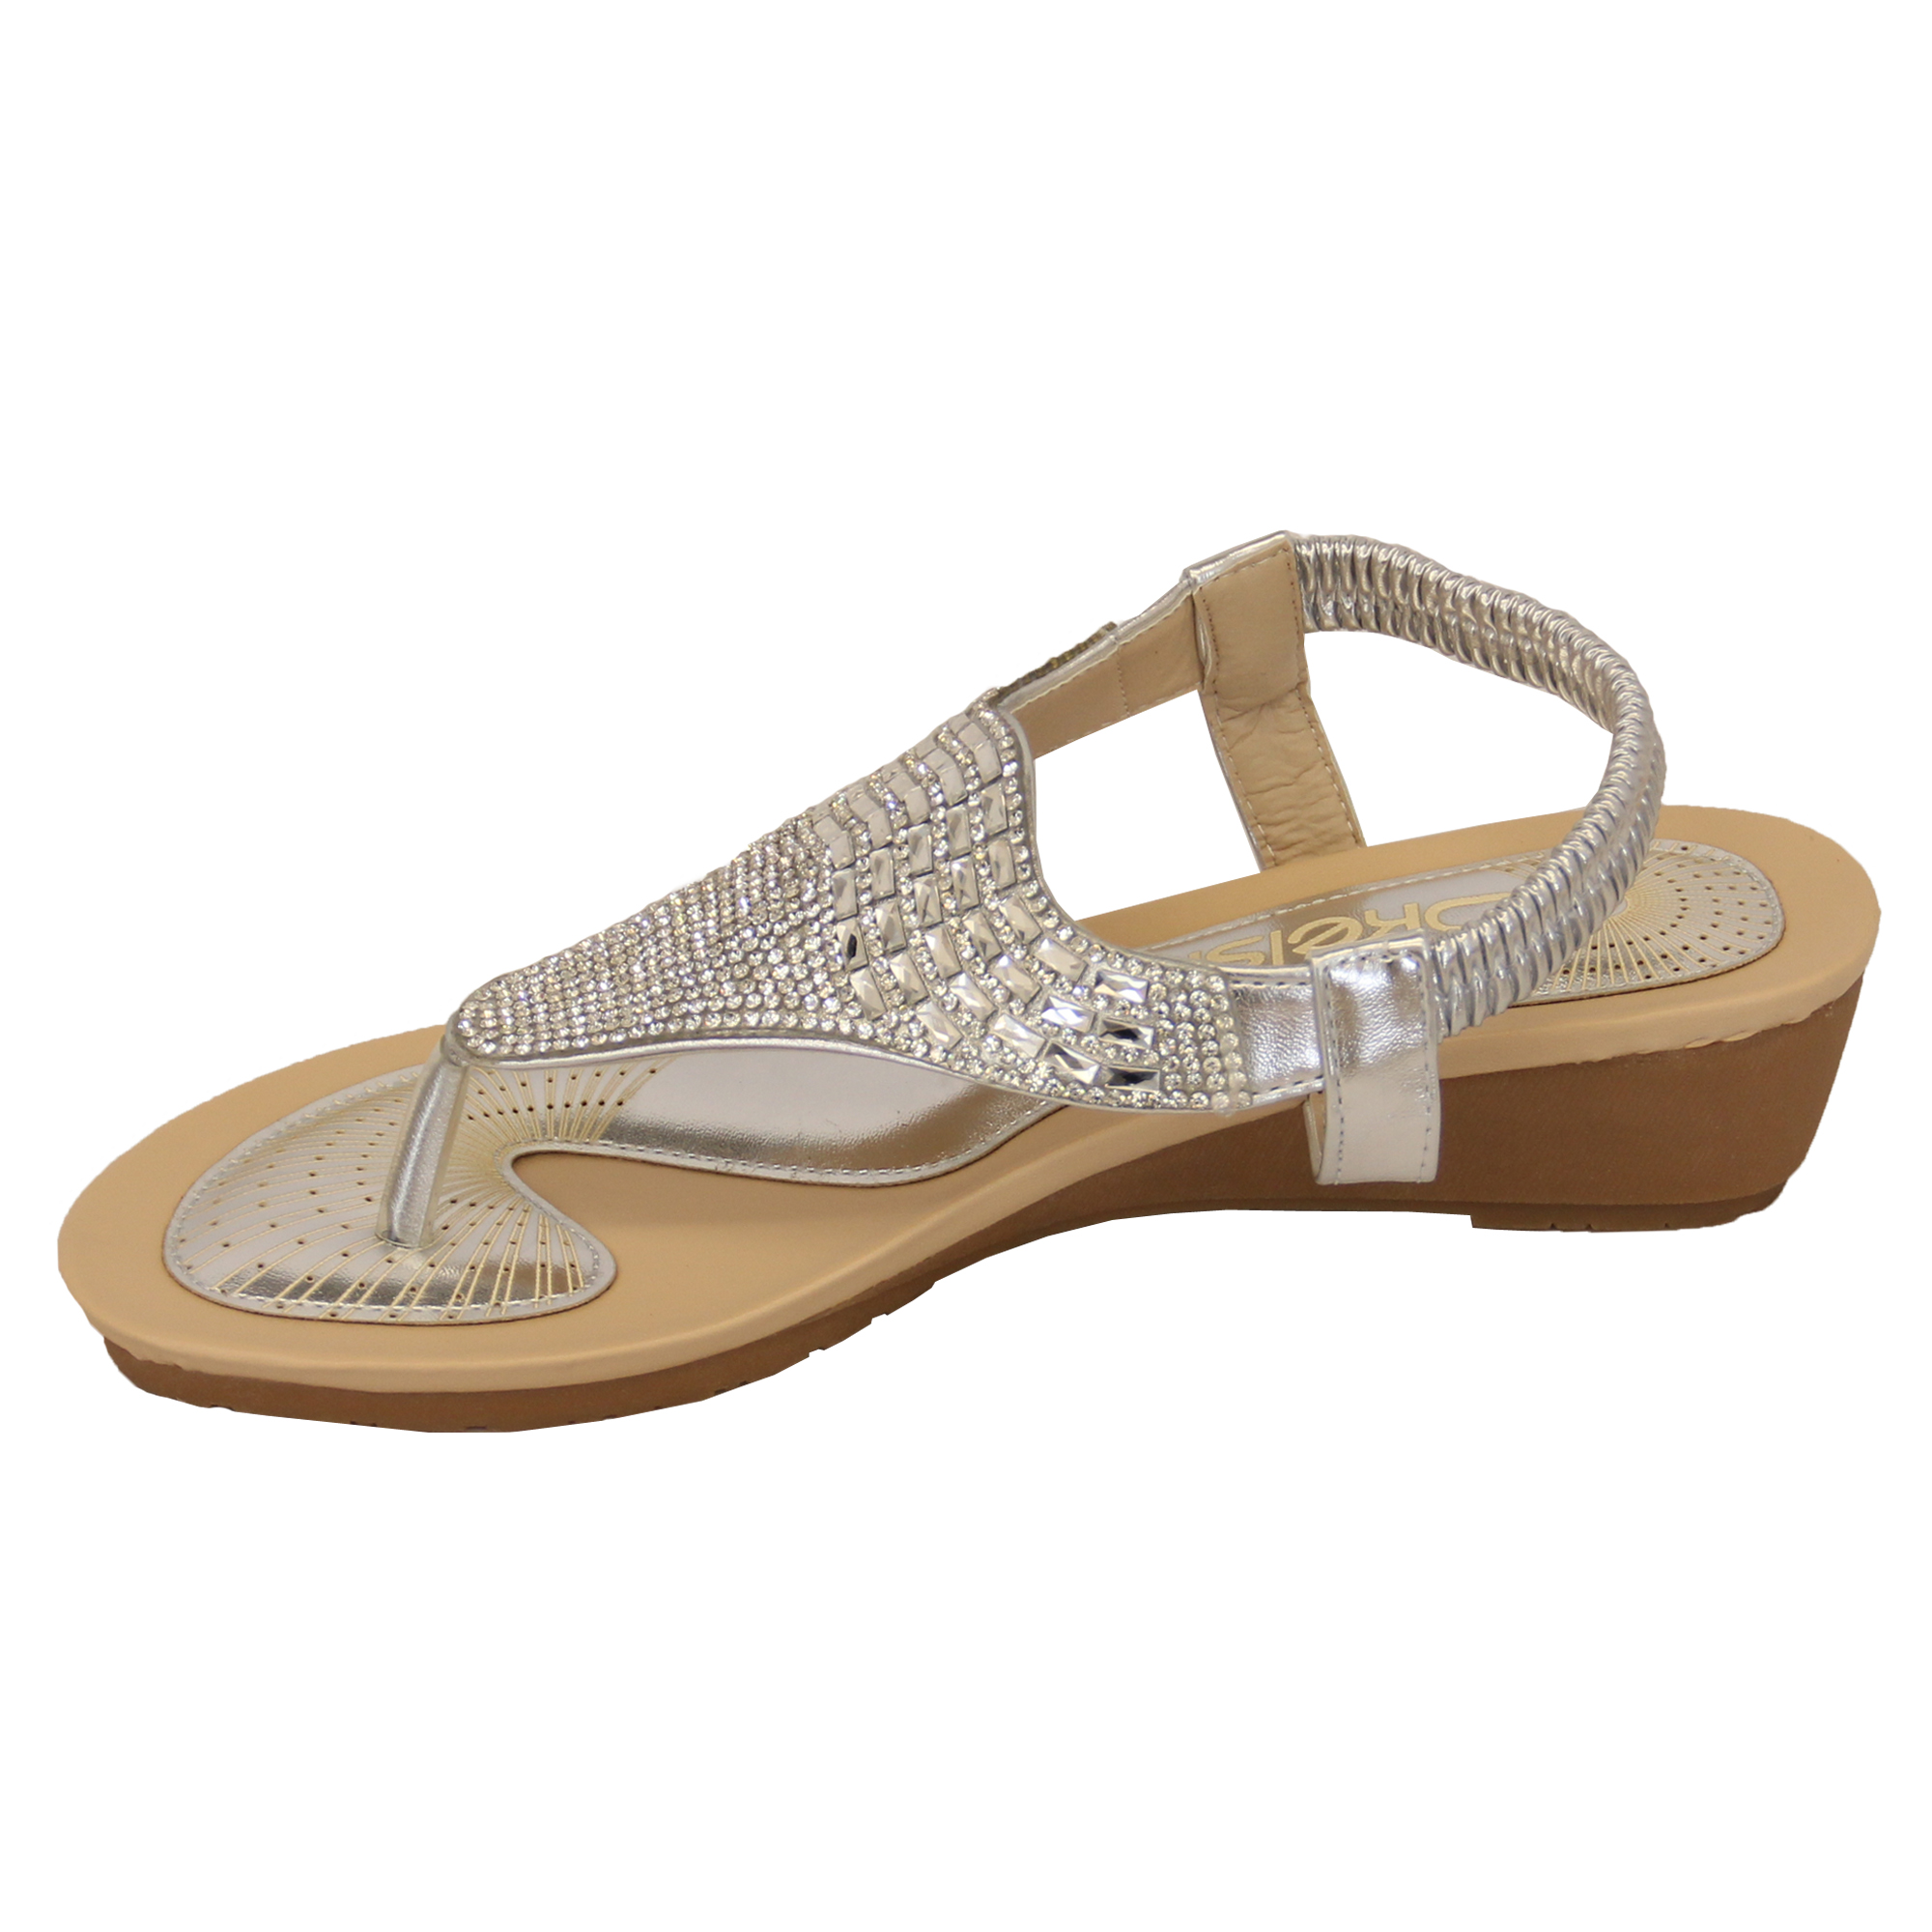 Ladies-Sandals-Kelsi-Womens-Diamante-Slip-On-Toe-Post-Shoes-Casual-Fashion-New thumbnail 25